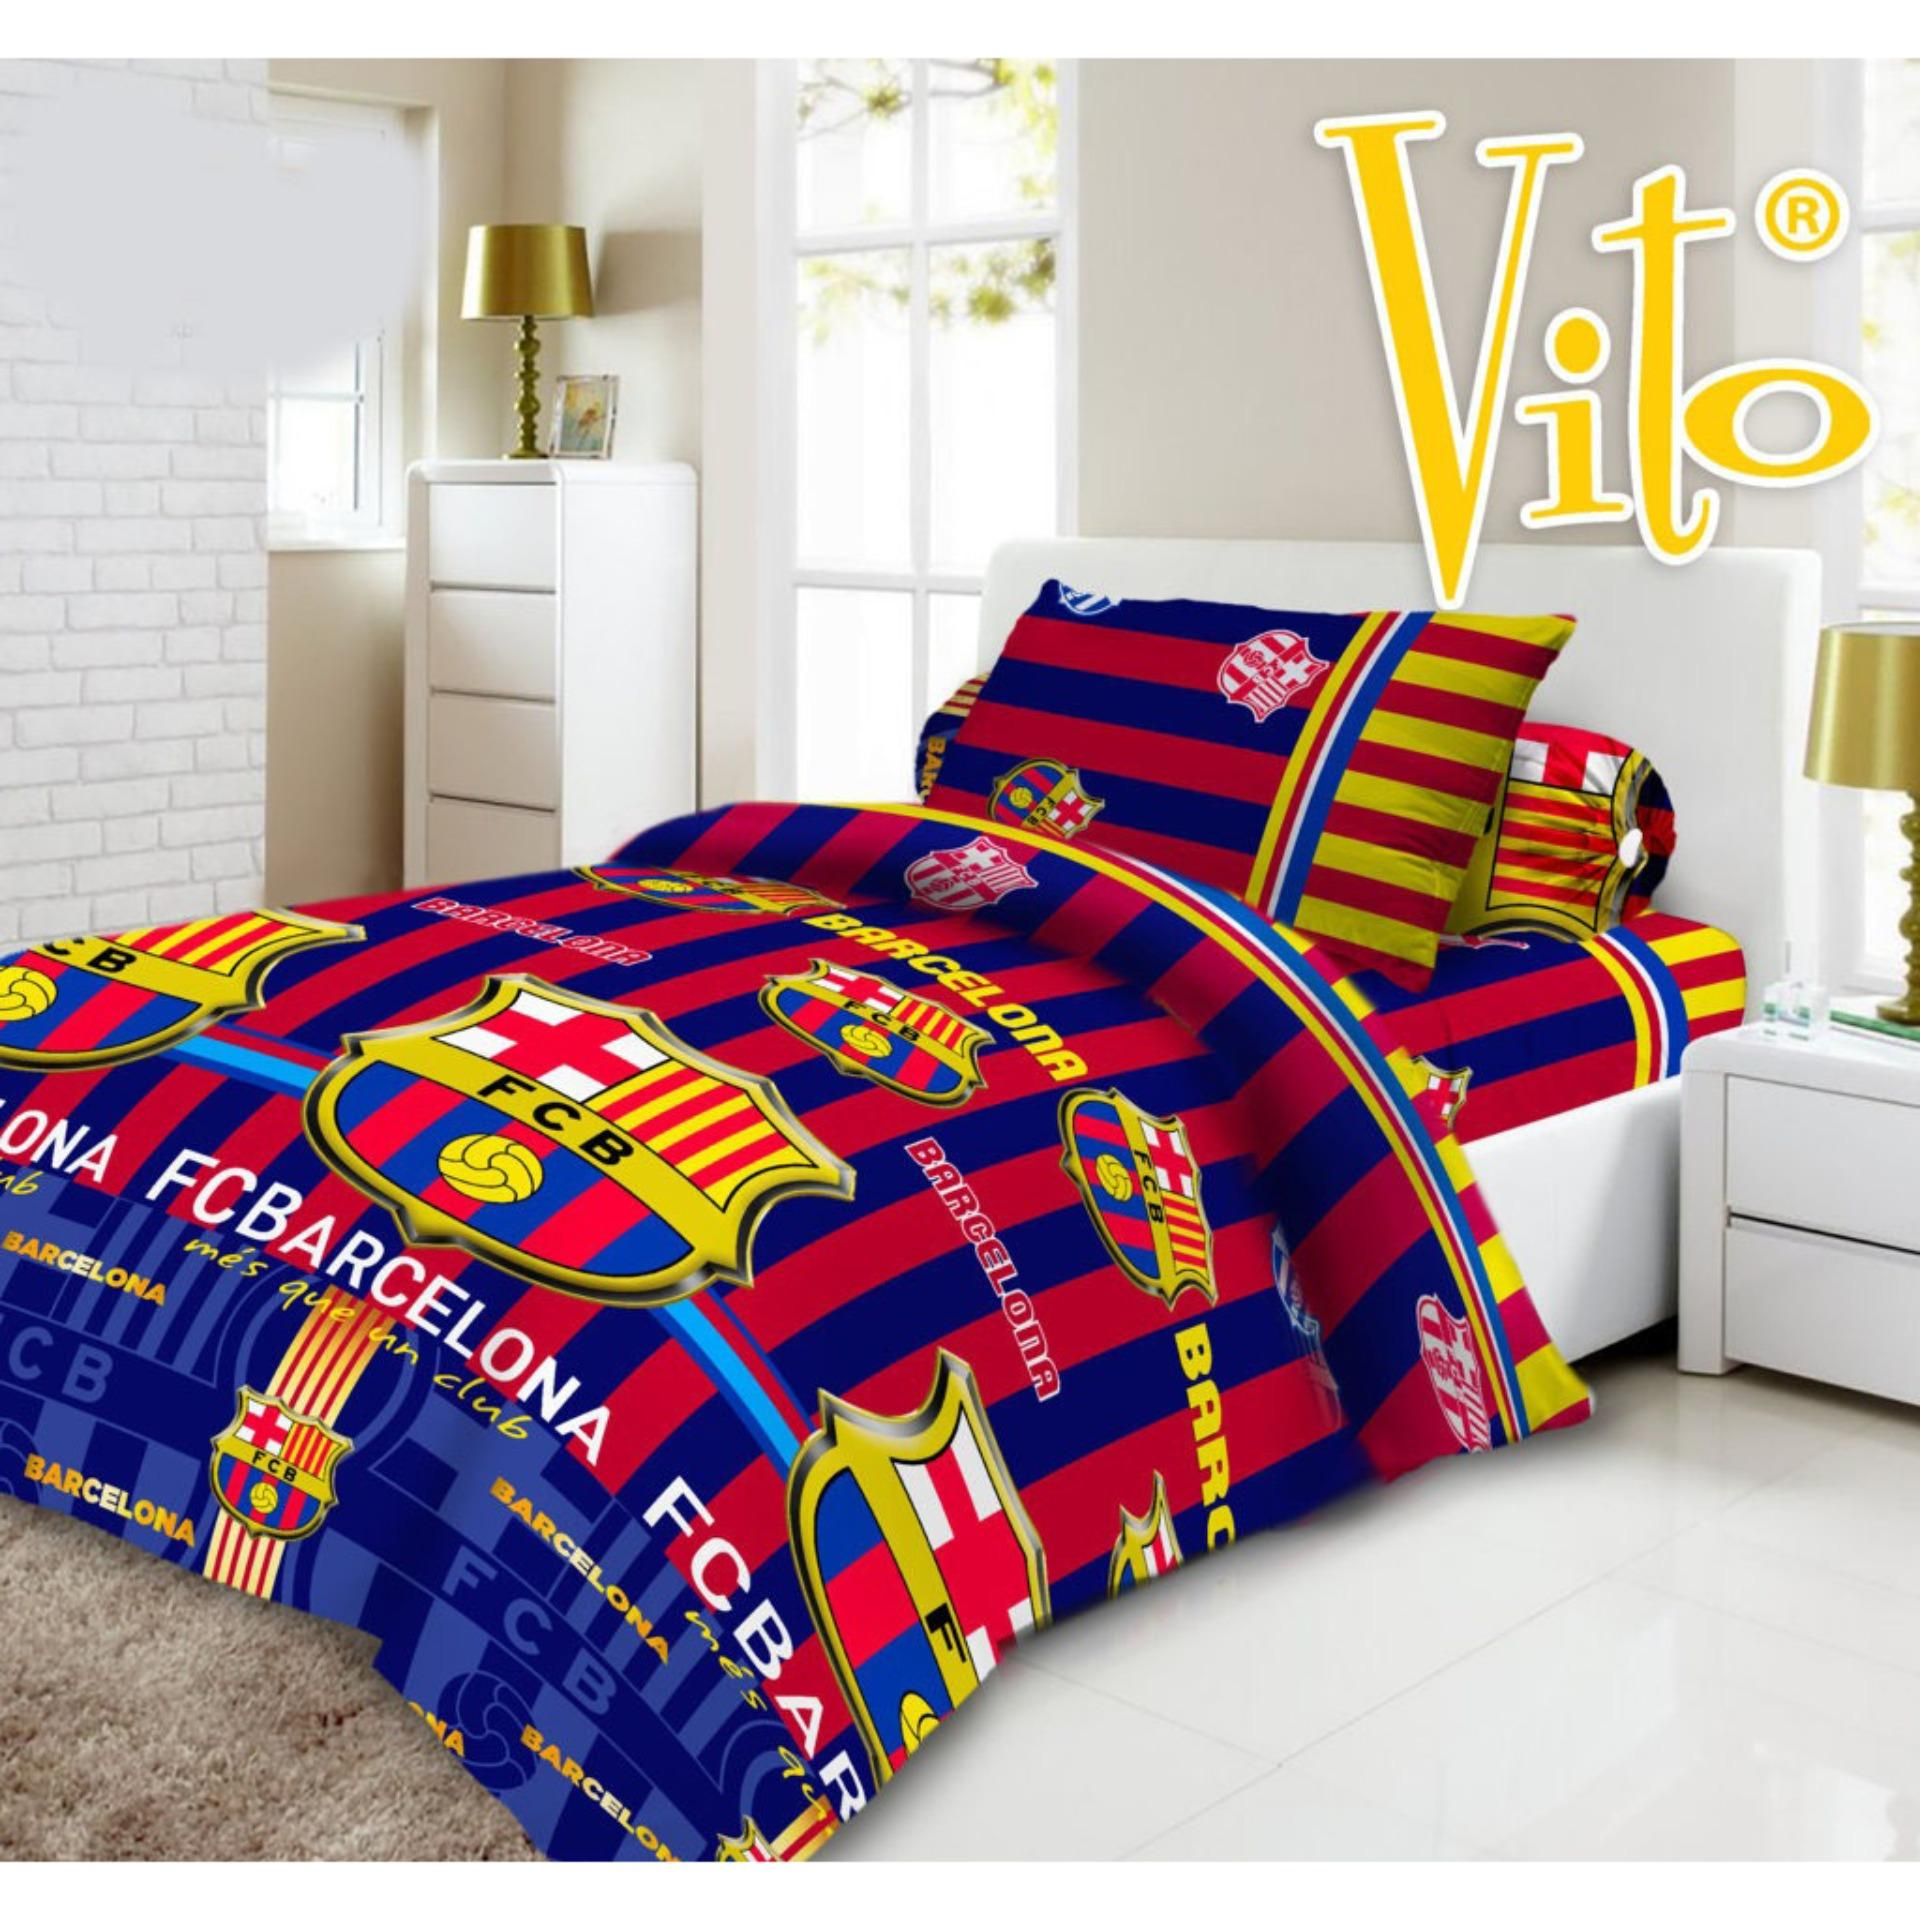 Sprei Vito Disperse Uk 120 Barca